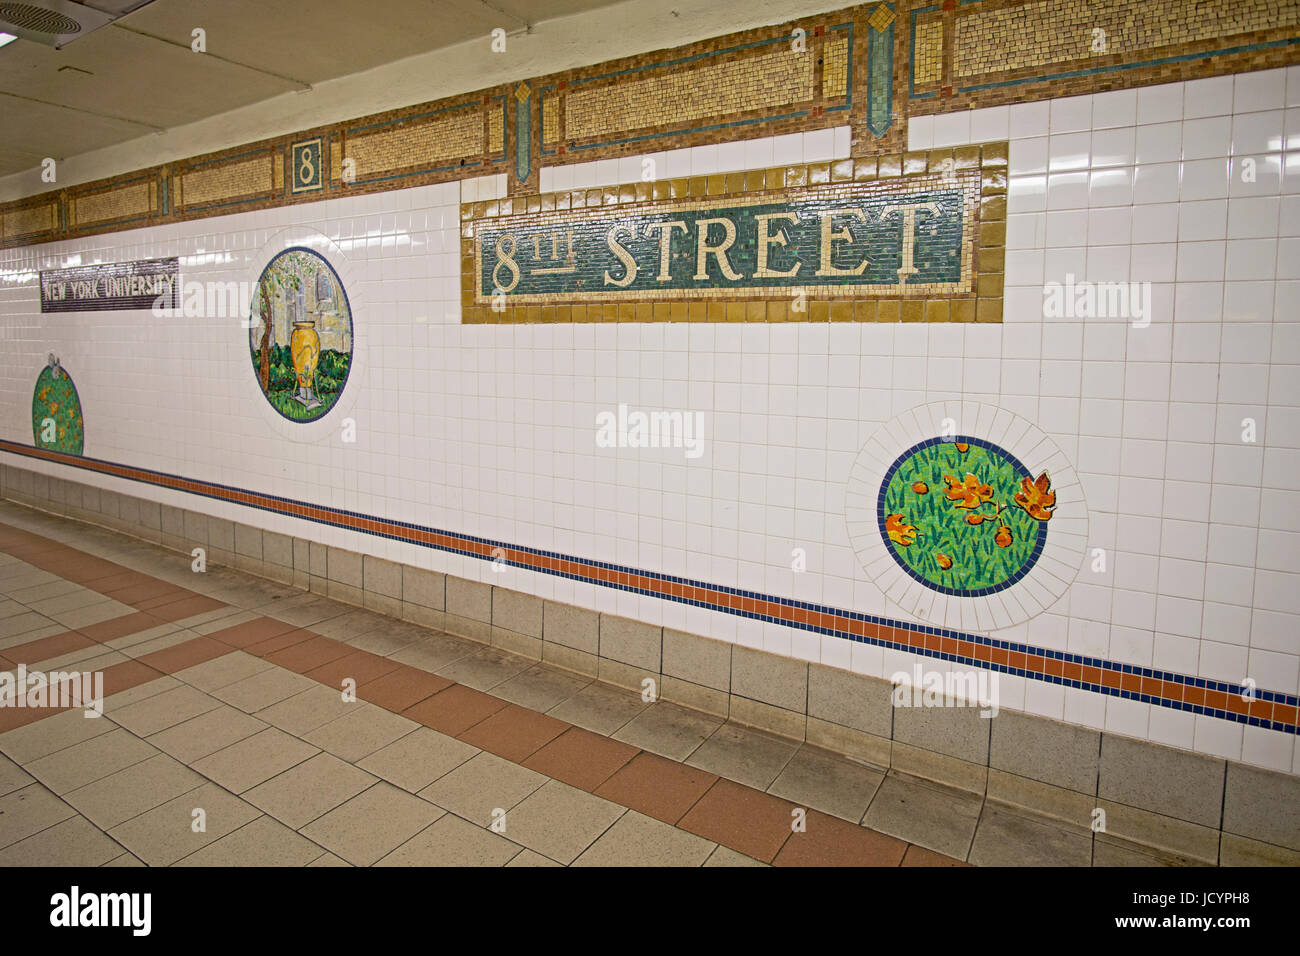 Subway art at the 8th Street station of the R and N lines on Broadway and 8th Street in Greenwich Village in New - Stock Image